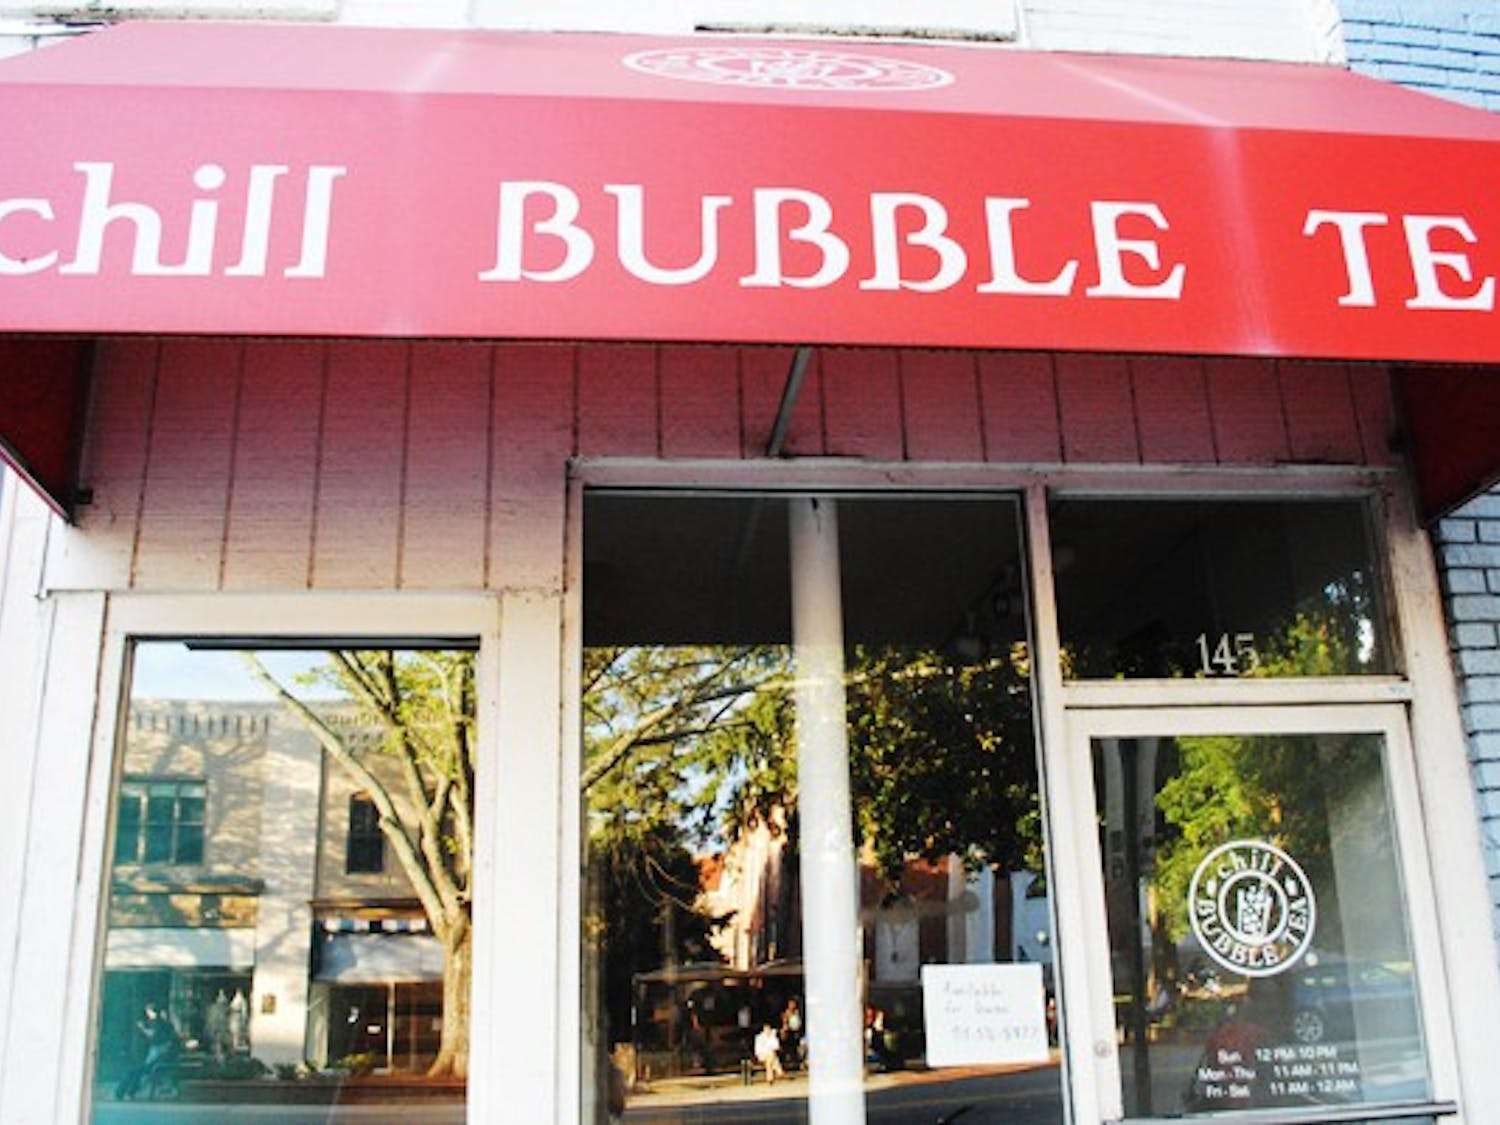 Chill Bubble Tea, Penang and Crepes Veronique are among the recently closed businesses on Franklin Street. There has been a high rate of turnover on Franklin, which sees the most revenue during the school year.